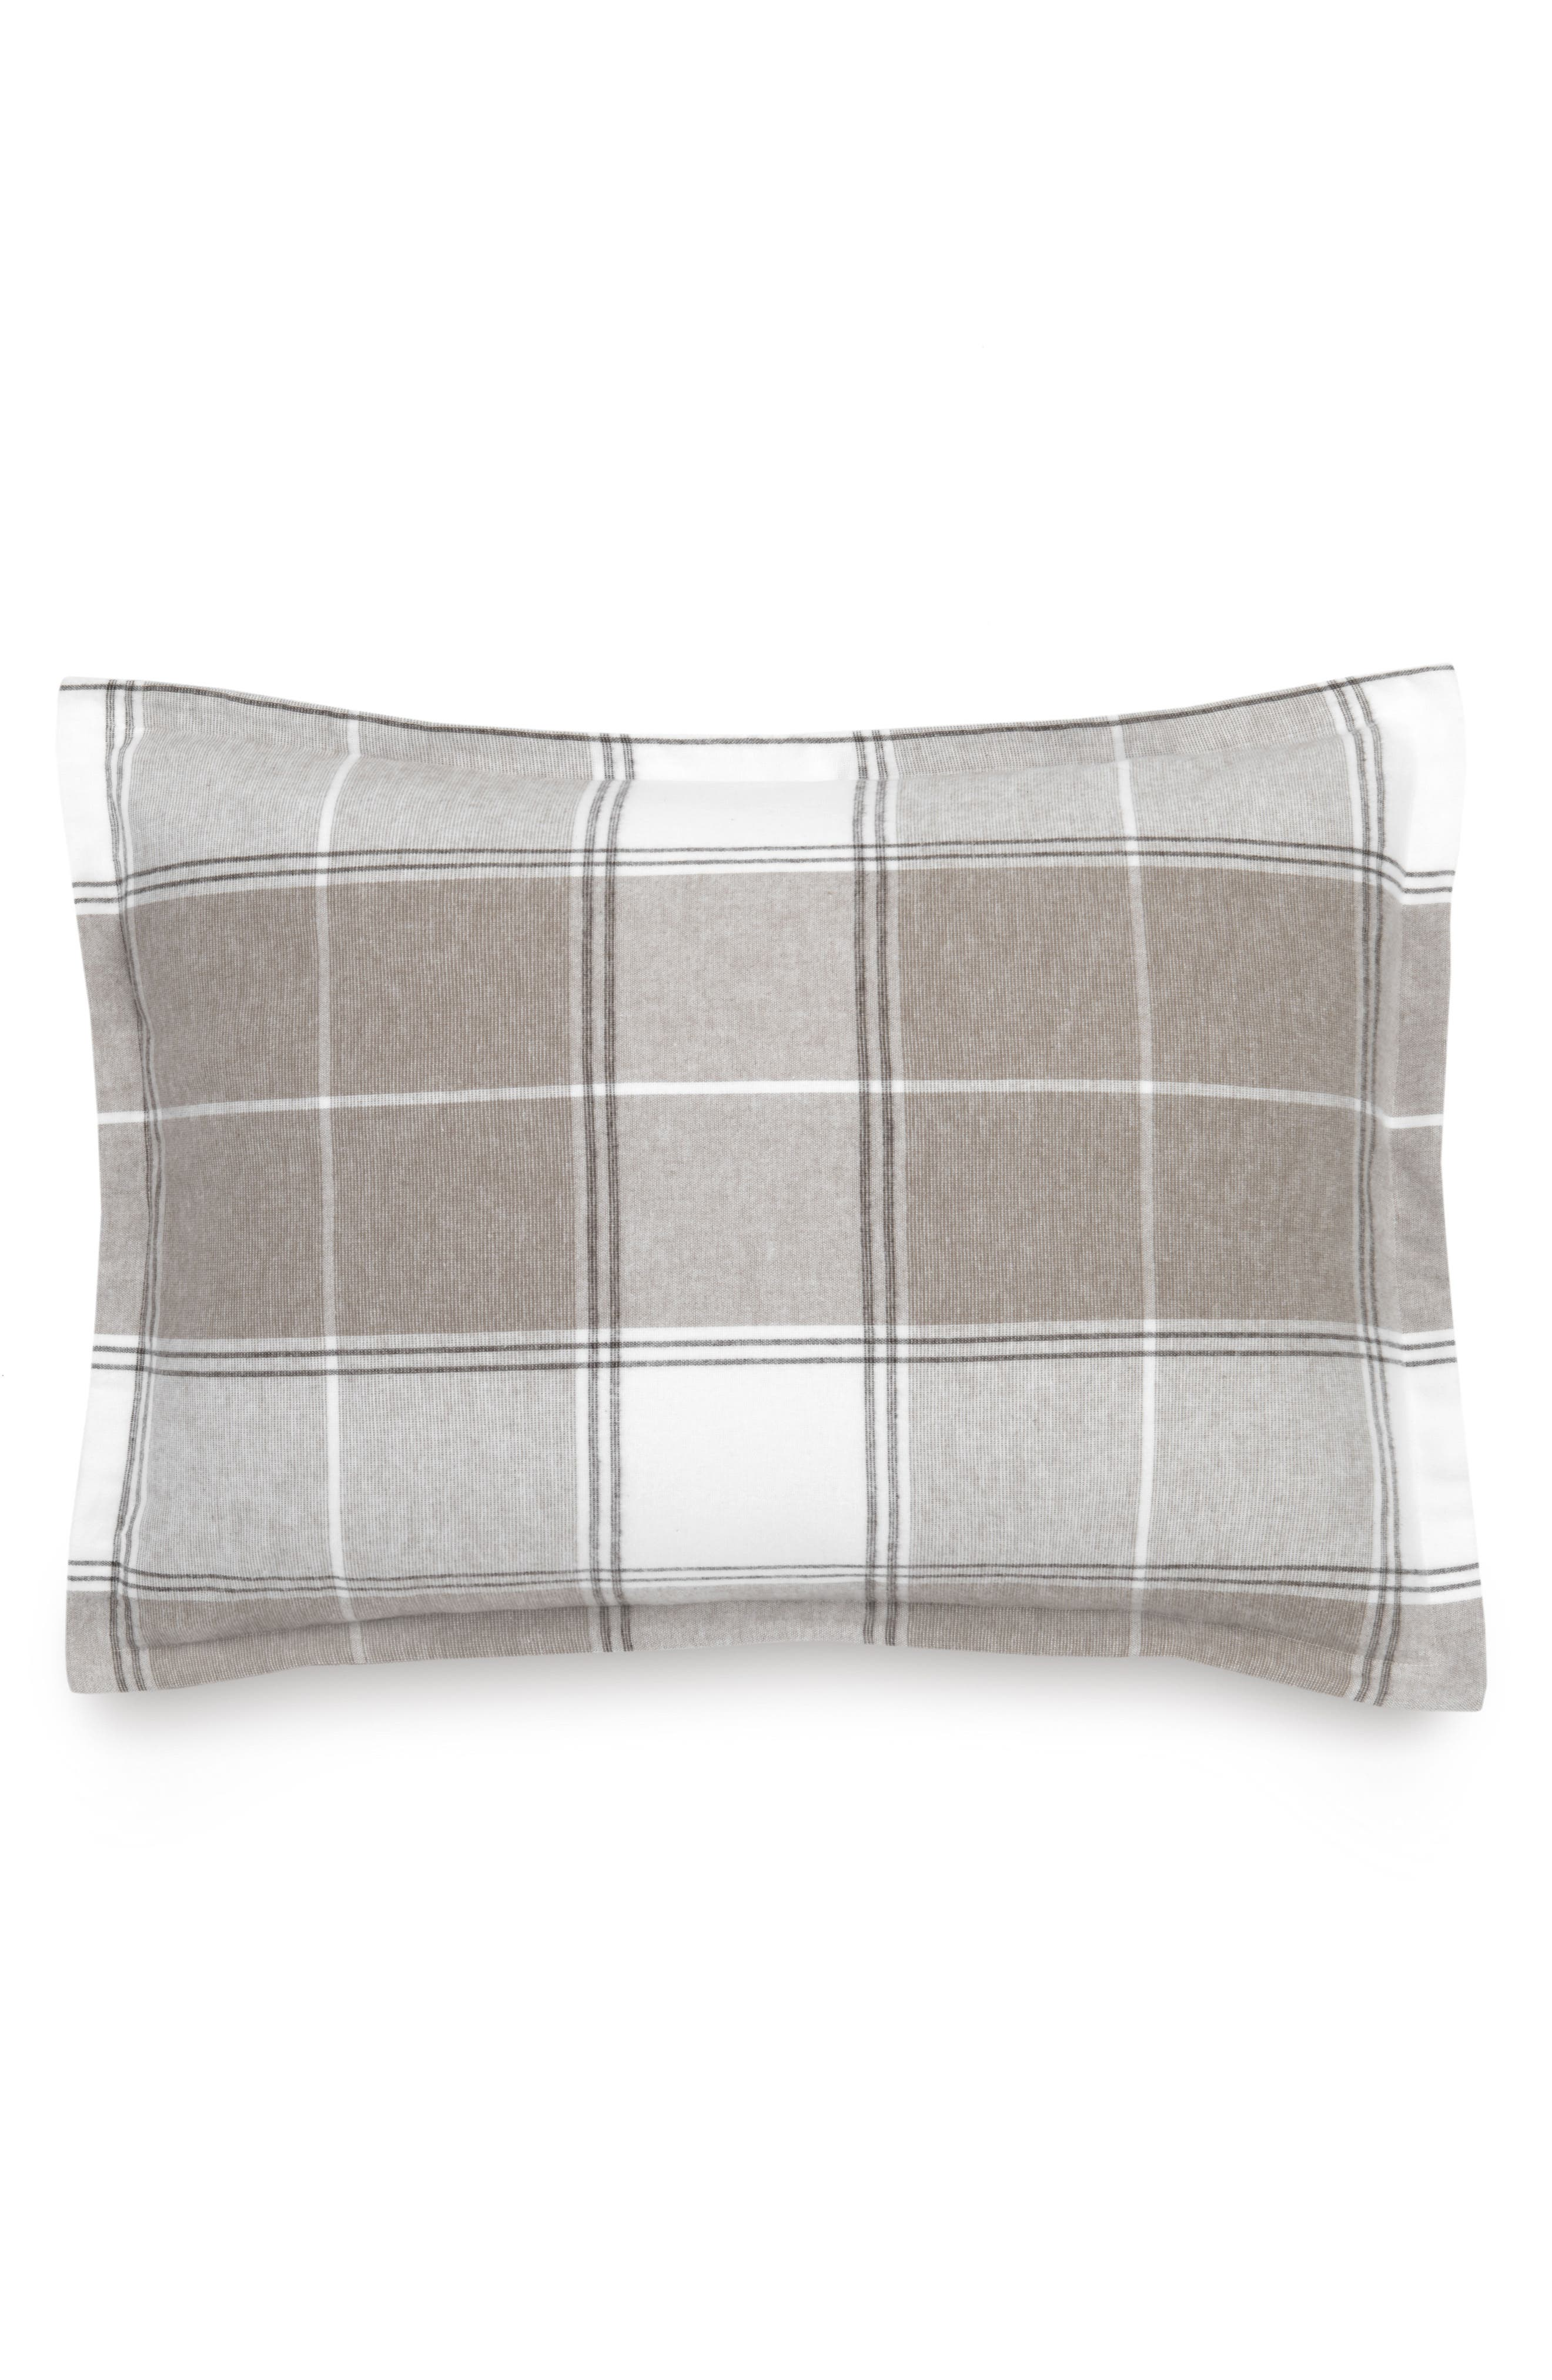 Alternate Image 1 Selected - UGG® Flannel Luxe Sham